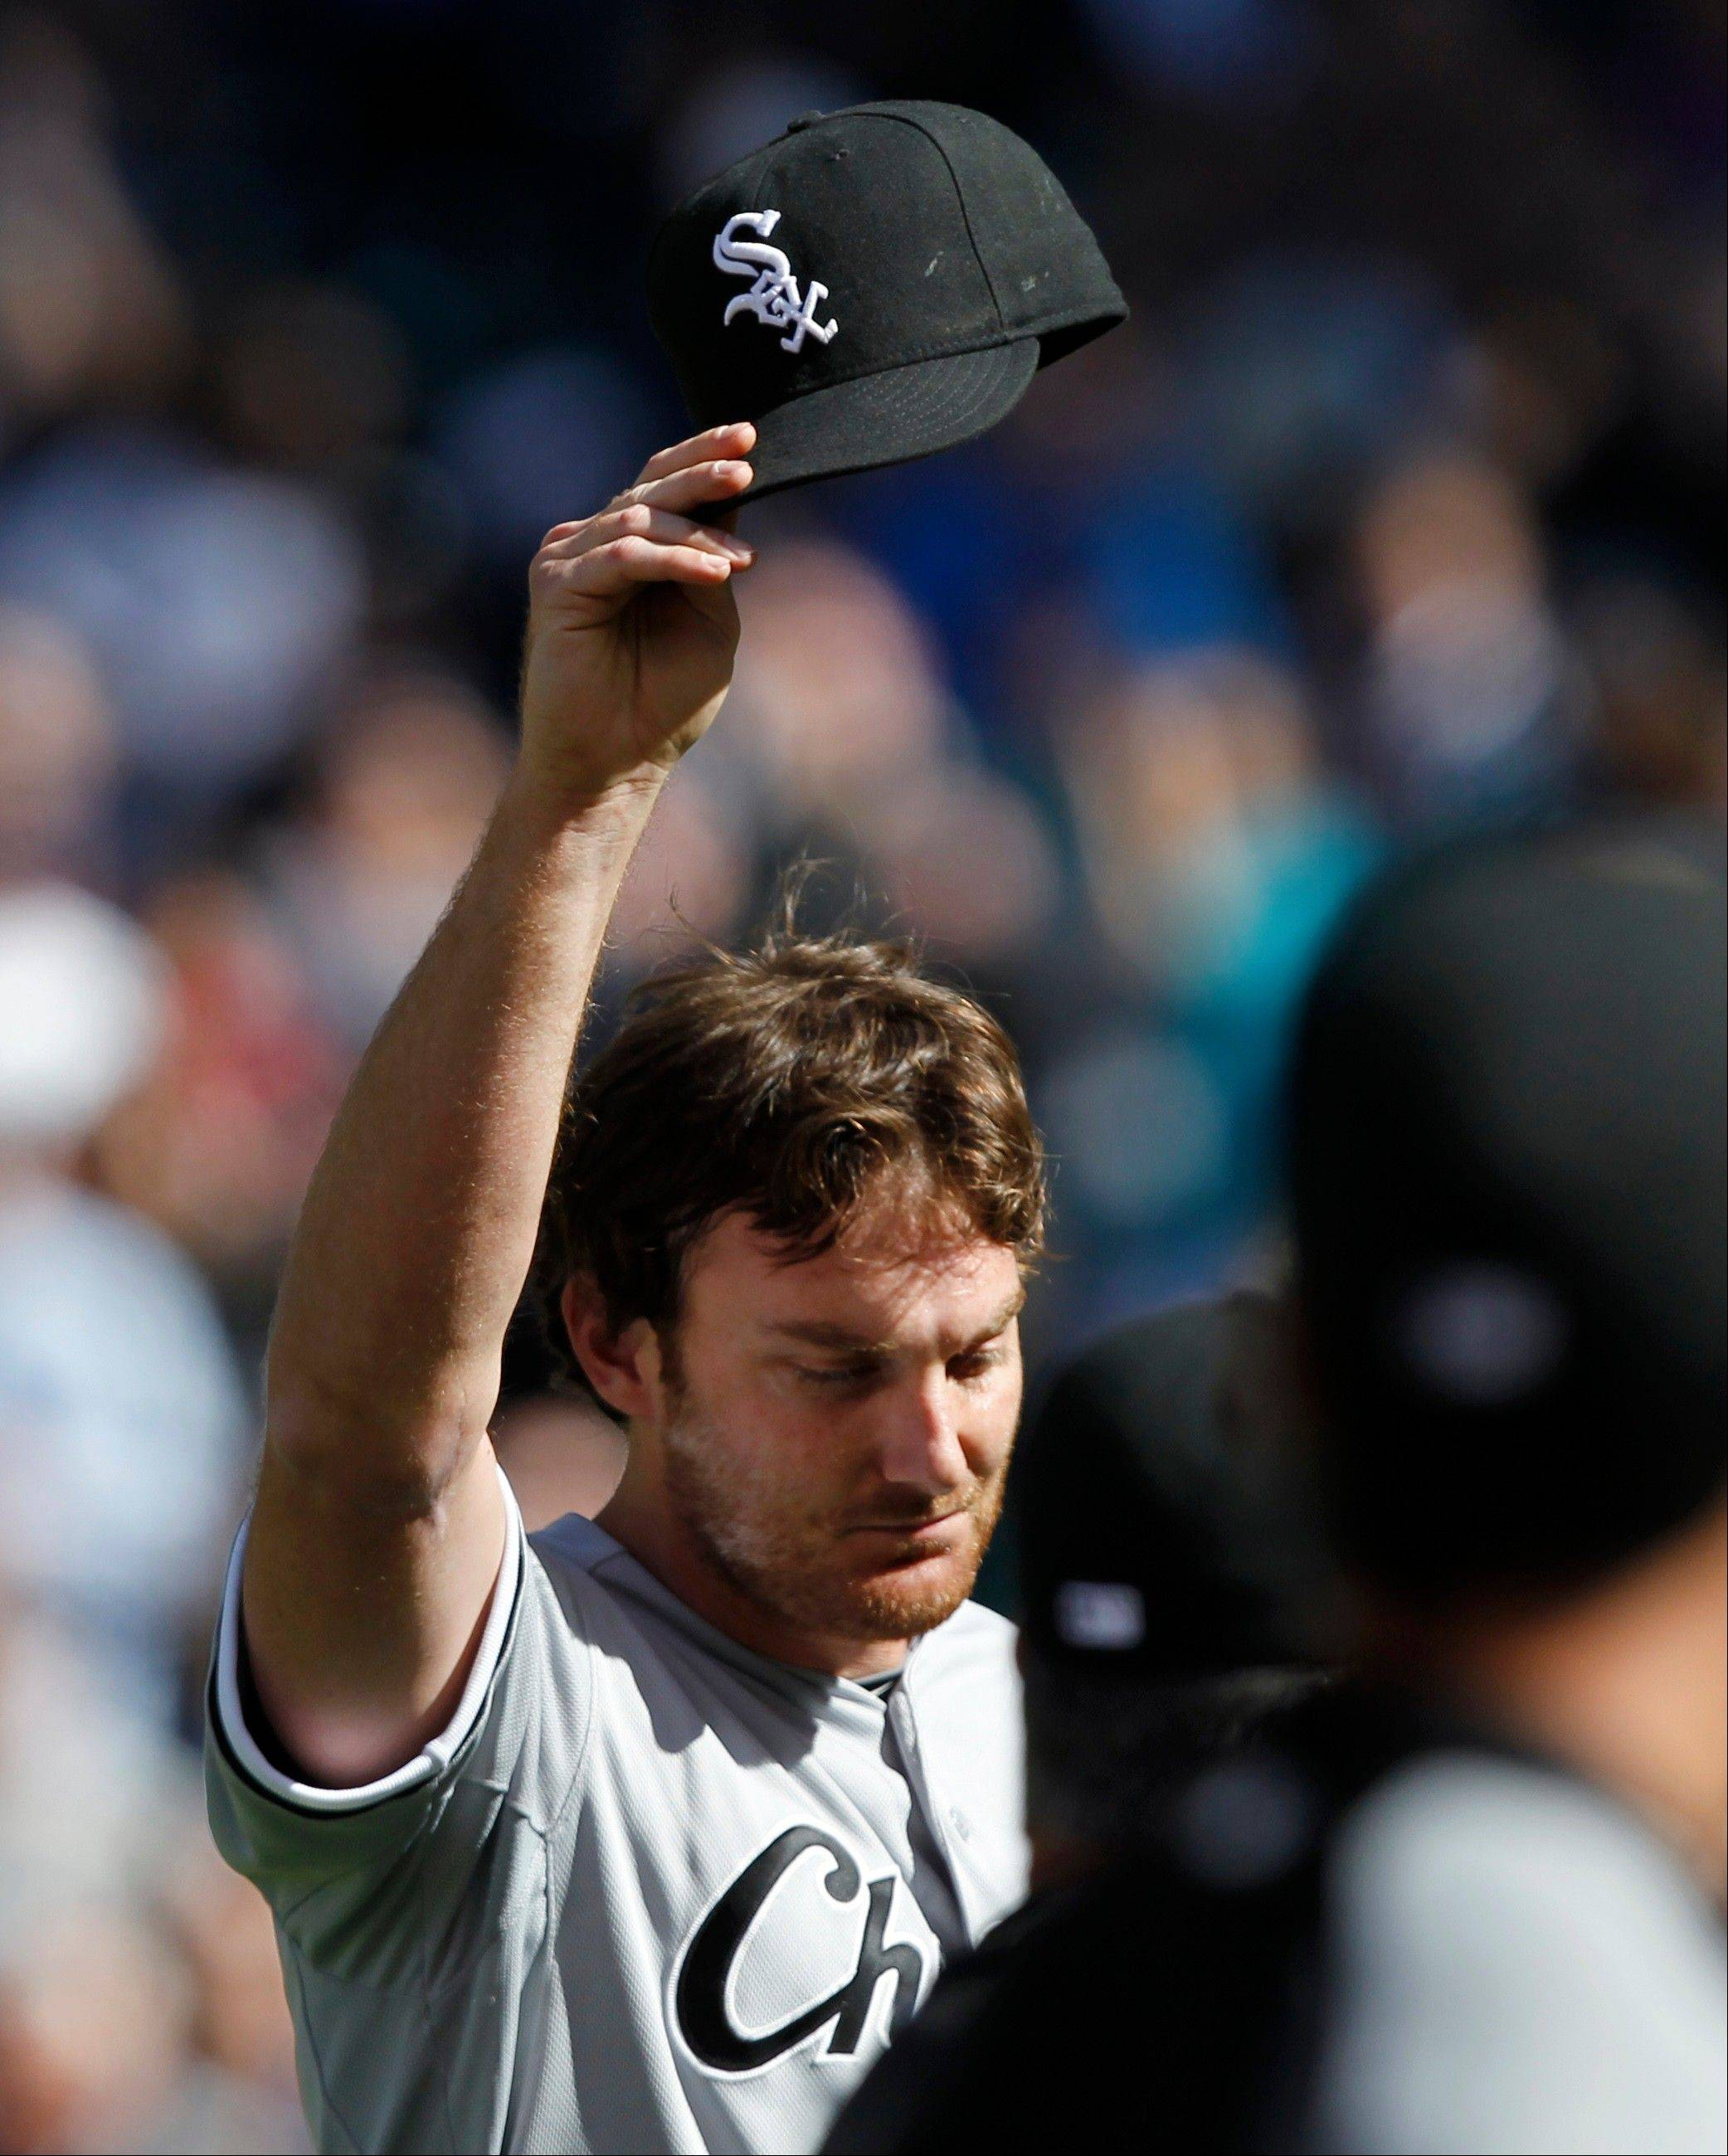 Phil Humber waves his cap after pitching a perfect baseball game against the Seattle Mariners. A Texas native, Humber said he's excited to be pitching closer to home with the Houston Astros.